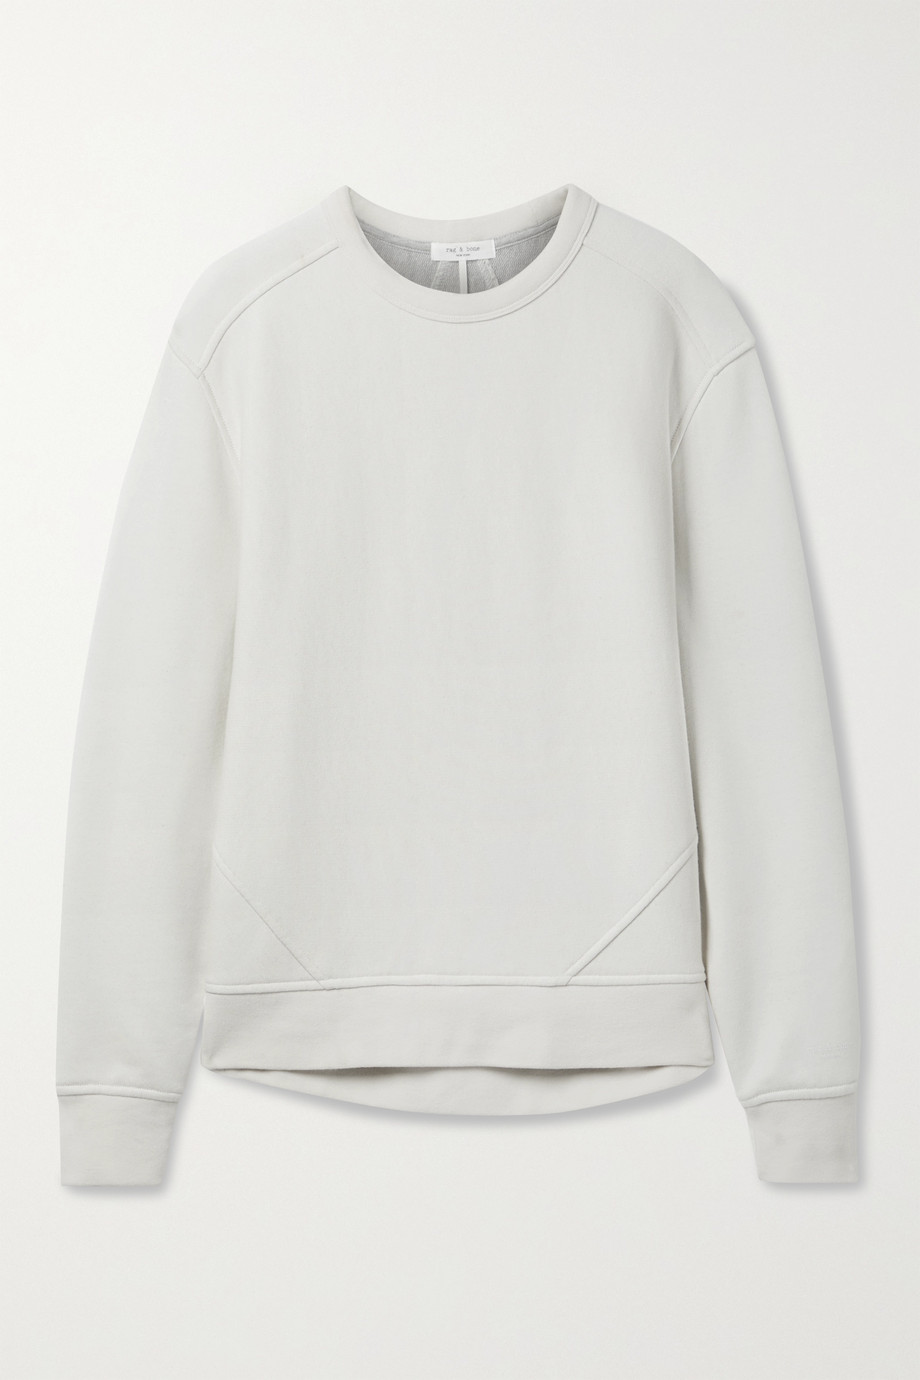 rag & bone + NET SUSTAIN City organic cotton-jersey sweatshirt